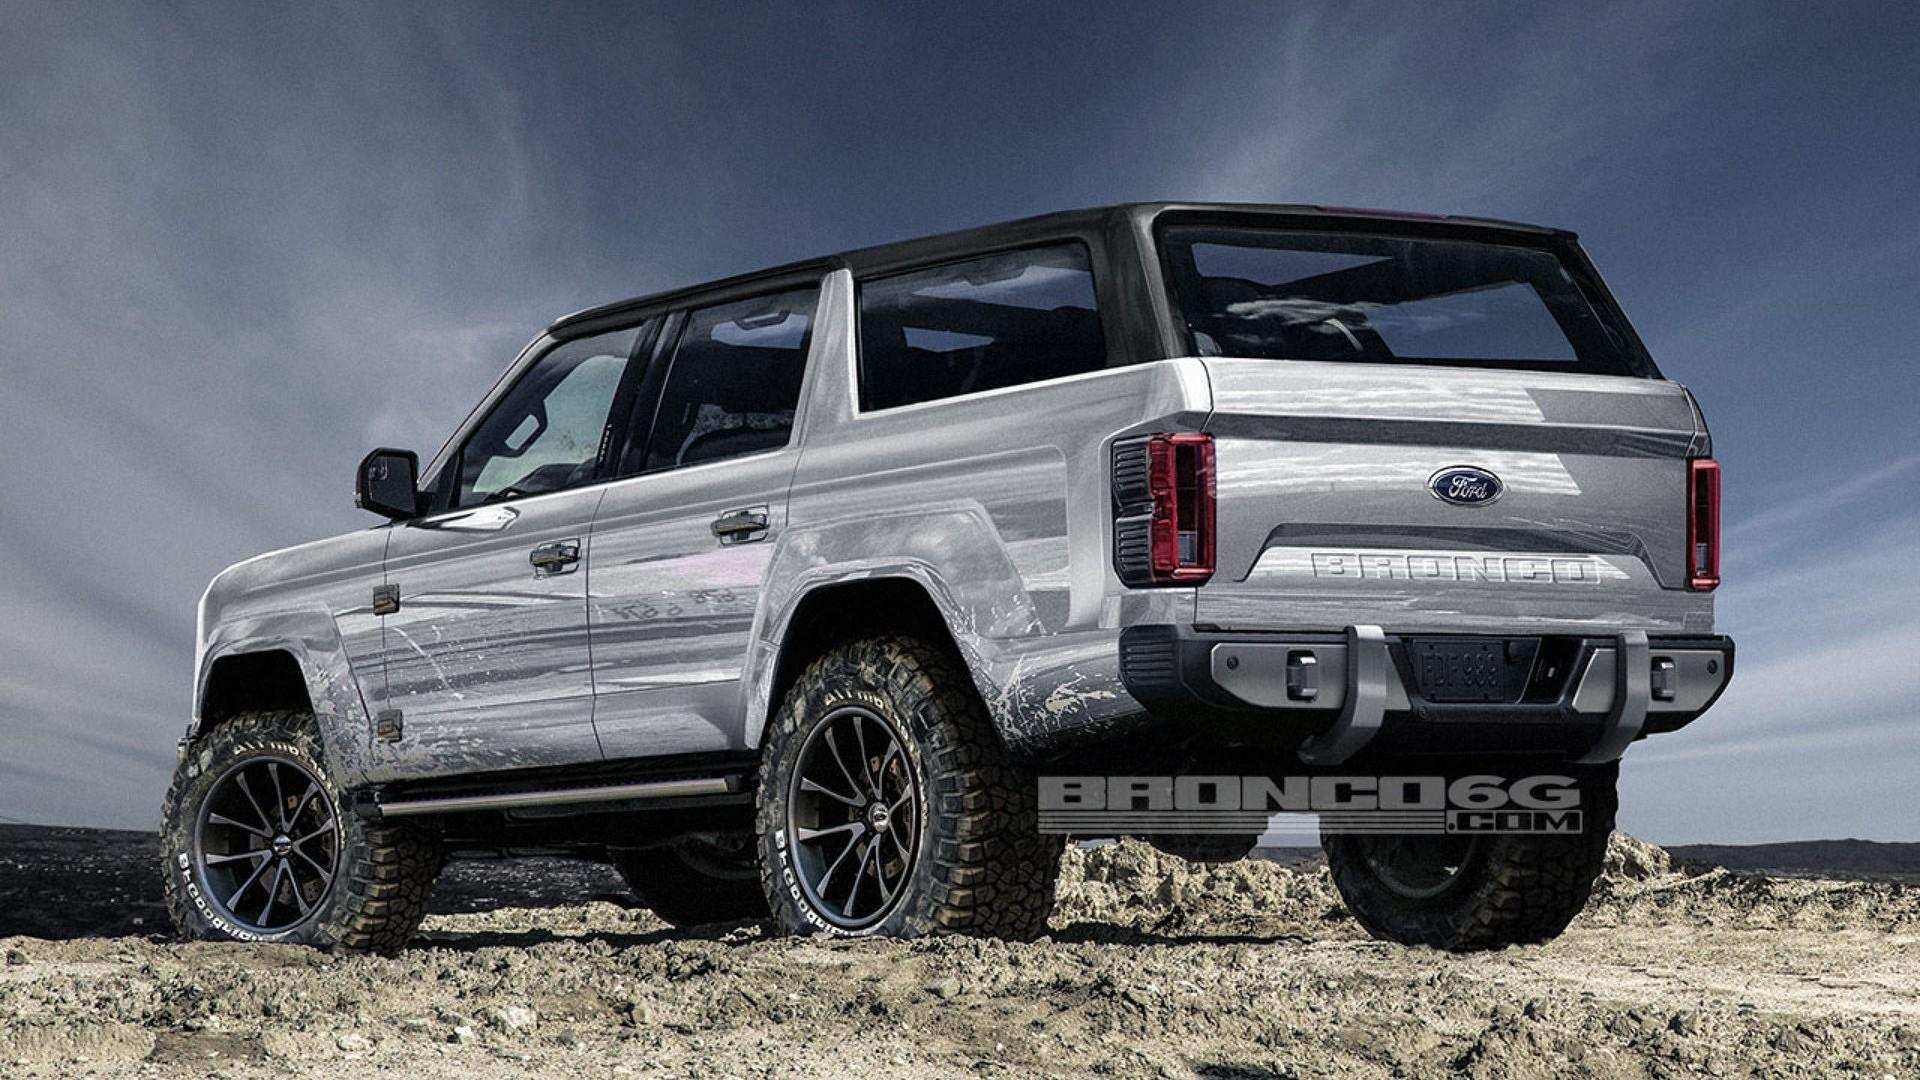 81 Great Ford Bronco 2020 Images Exterior and Interior with Ford Bronco 2020 Images